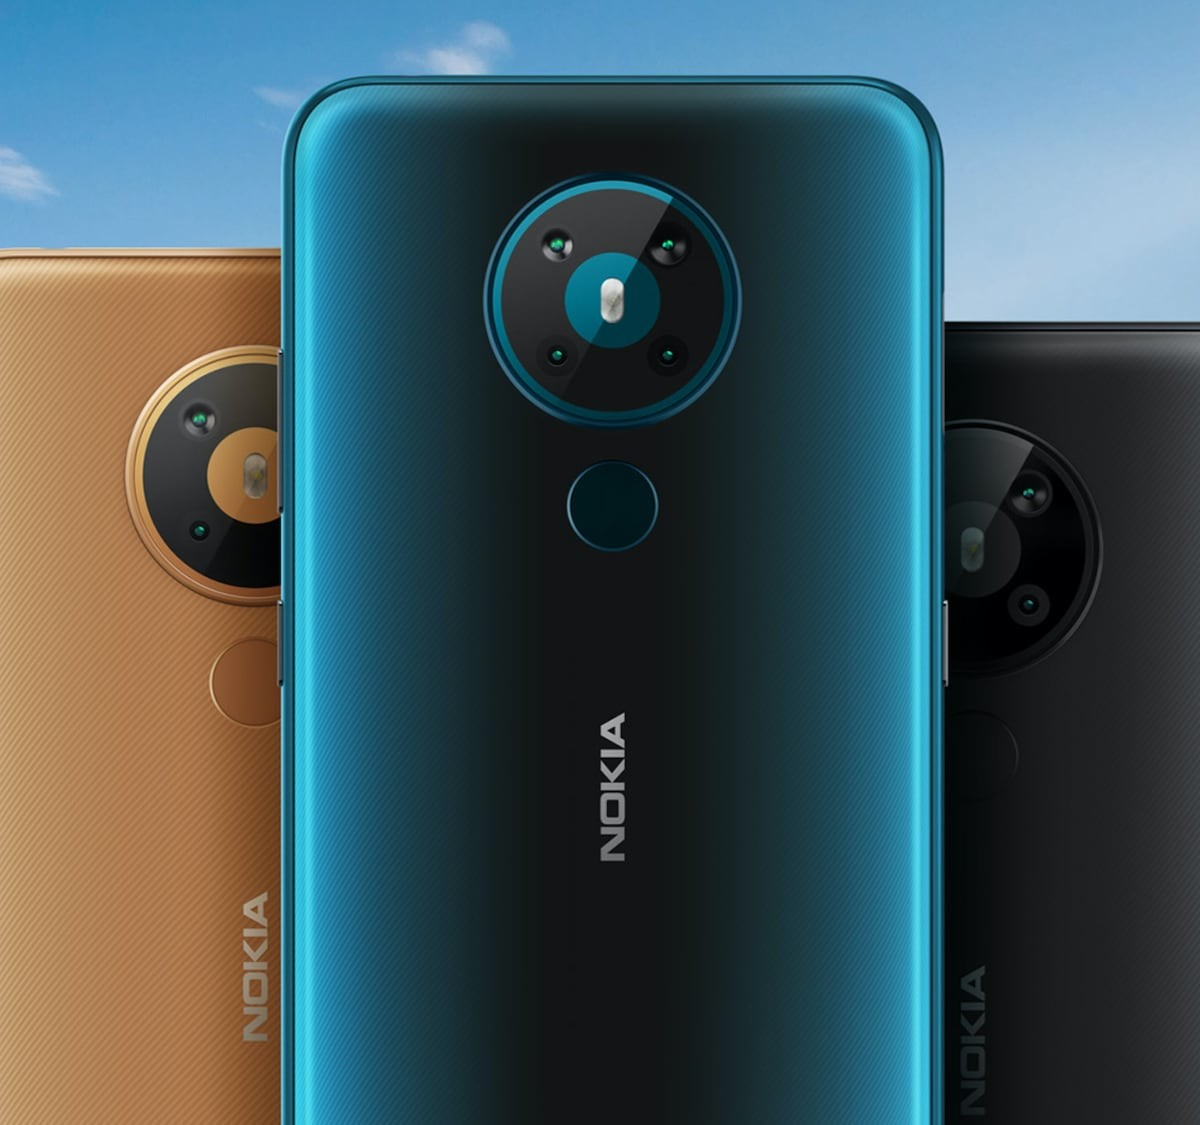 Nokia 8.3 5G 4K Ultra HD Smartphone has built-in ZEISS cinematic effects